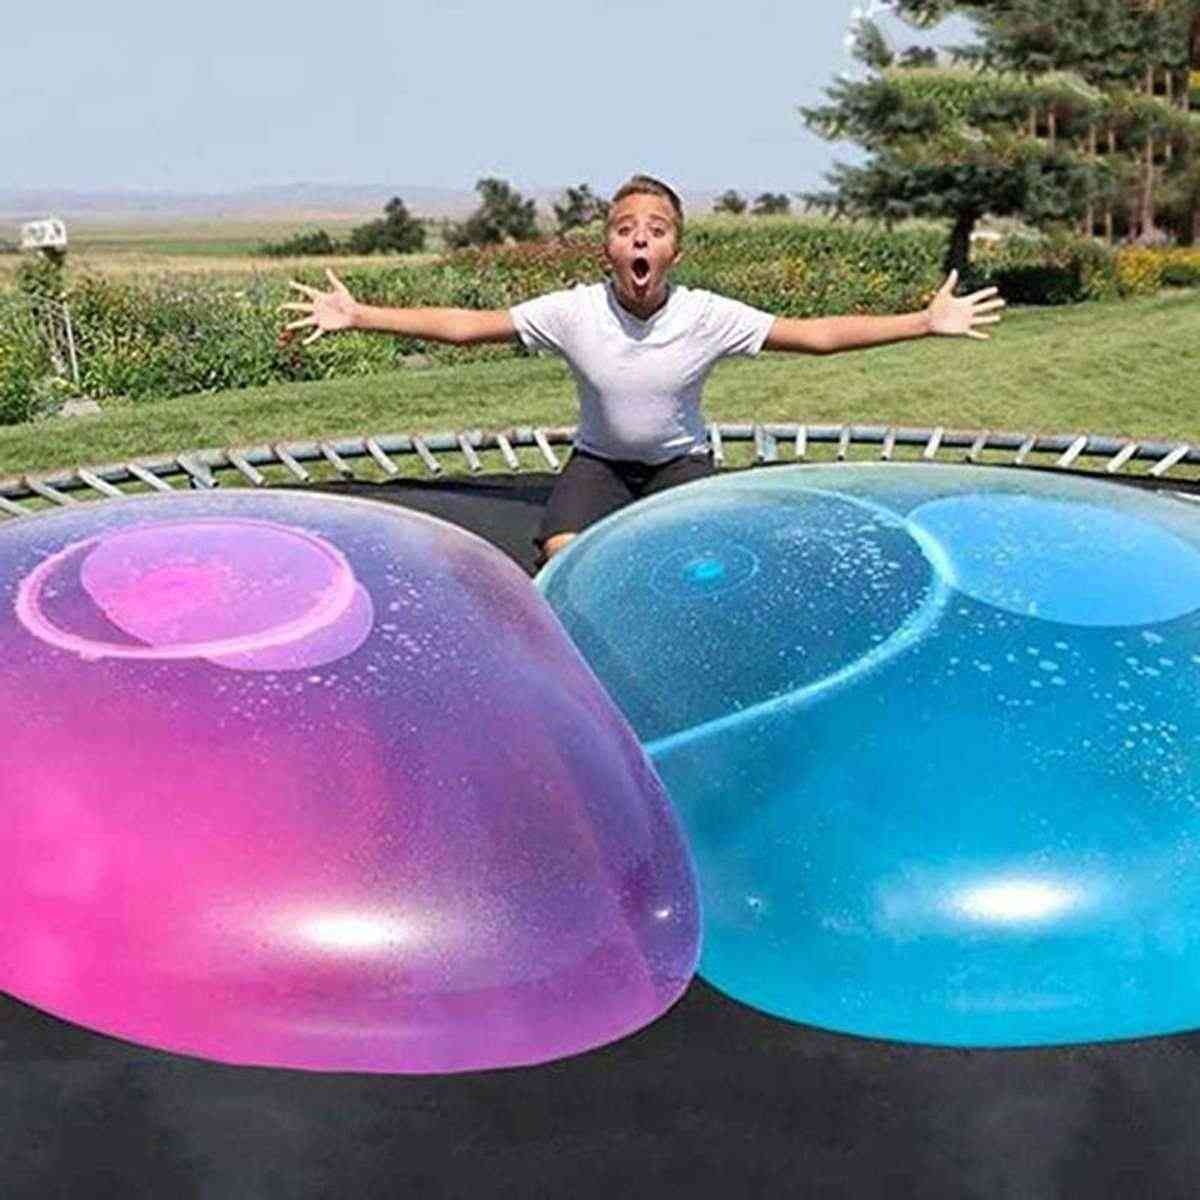 Baby Outdoor Amazing Balls, Soft Air Water Filled Blow Up For Toy, Fun Party Game, Summer For Kids